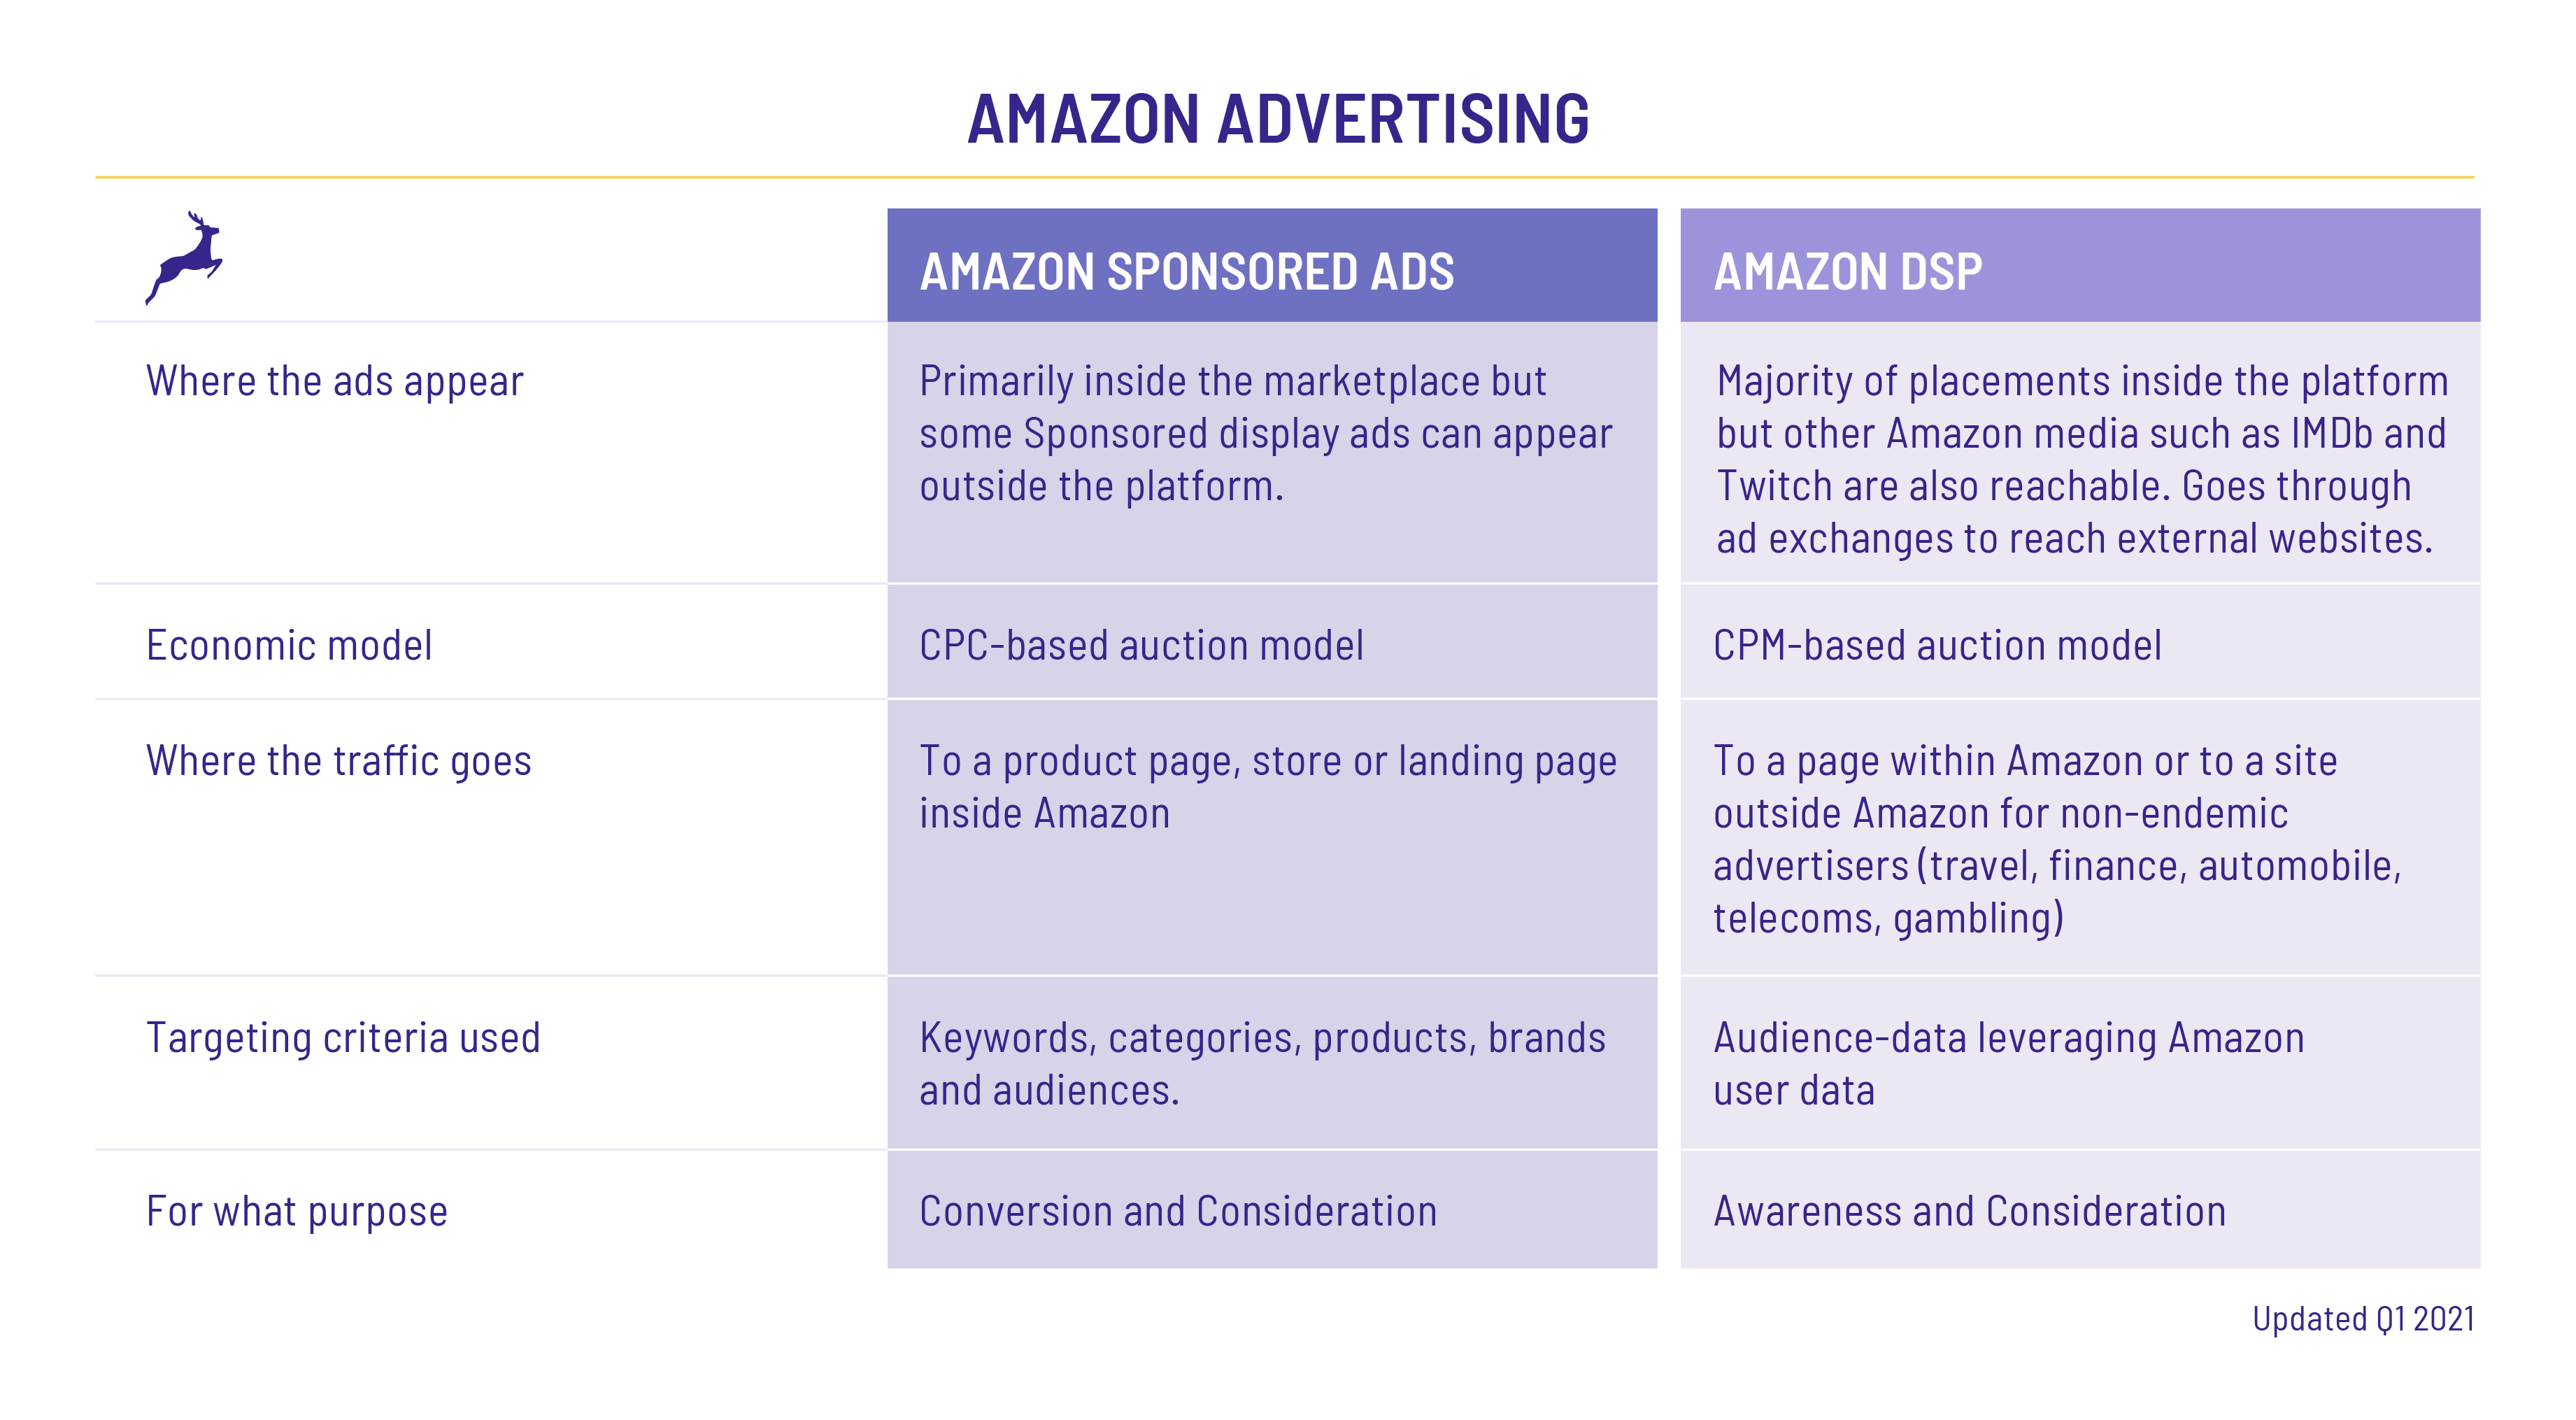 Amazon Advertising 2021